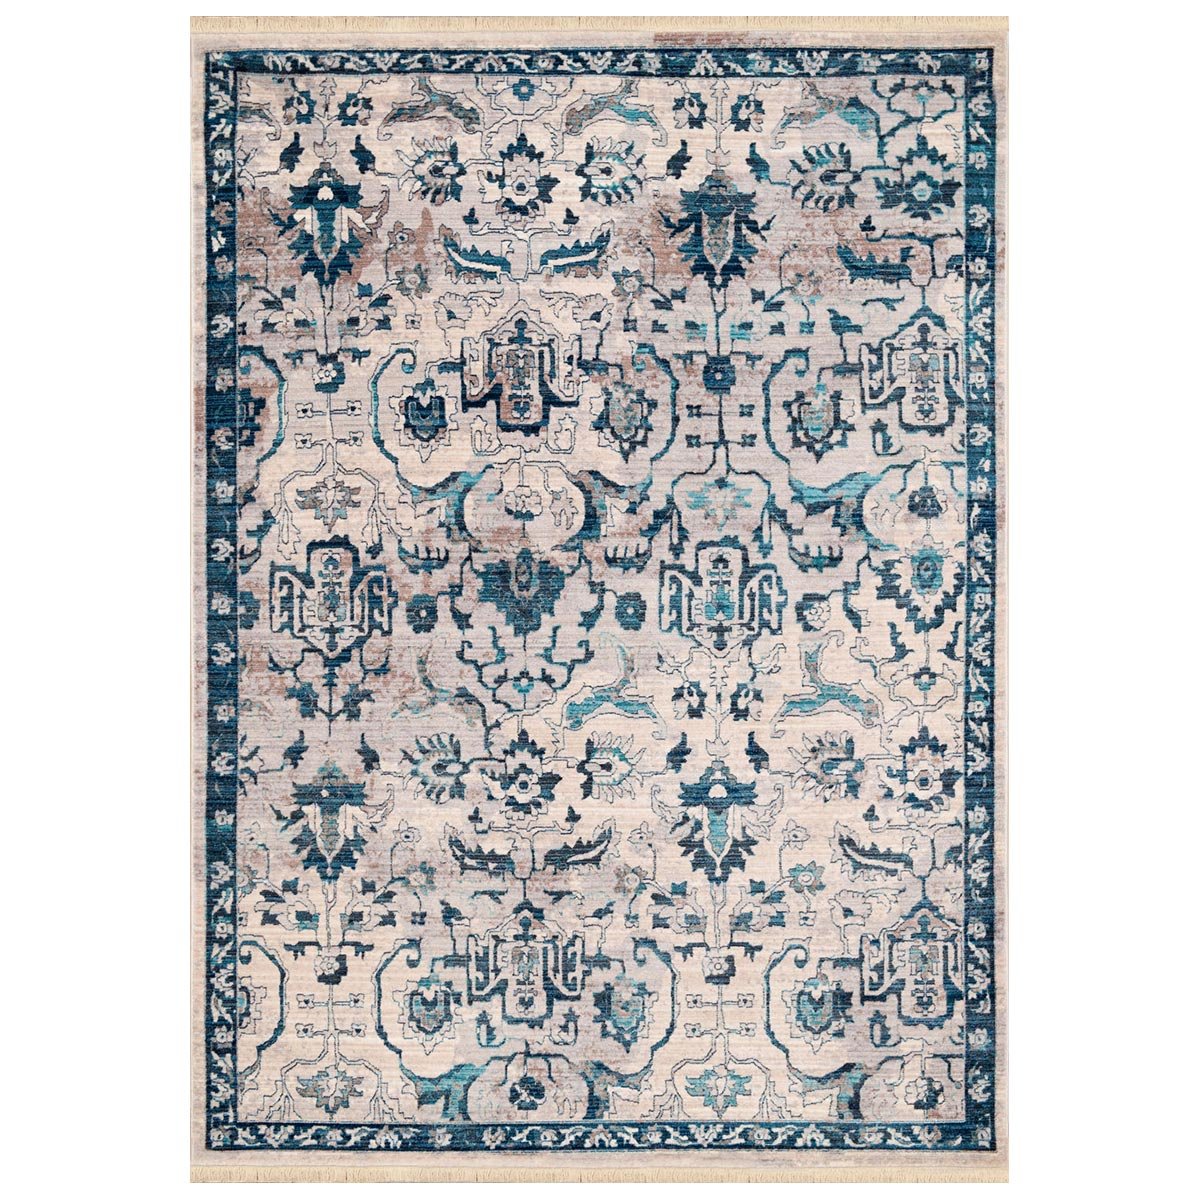 Tribal Day Rug - 10 x 13